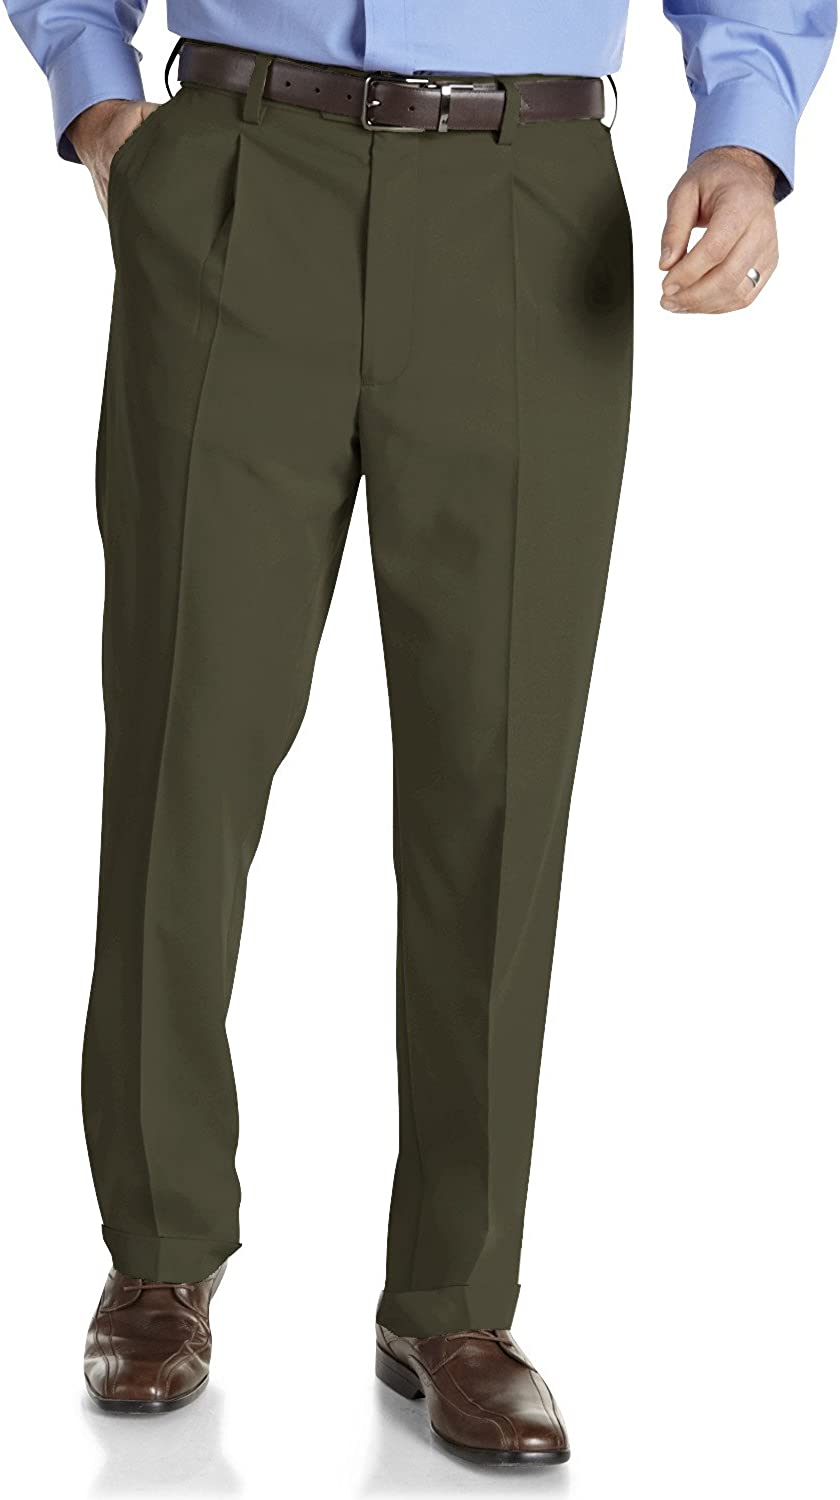 Gold Series by DXL Big and Tall Mens Sorbtek Pleated Pants